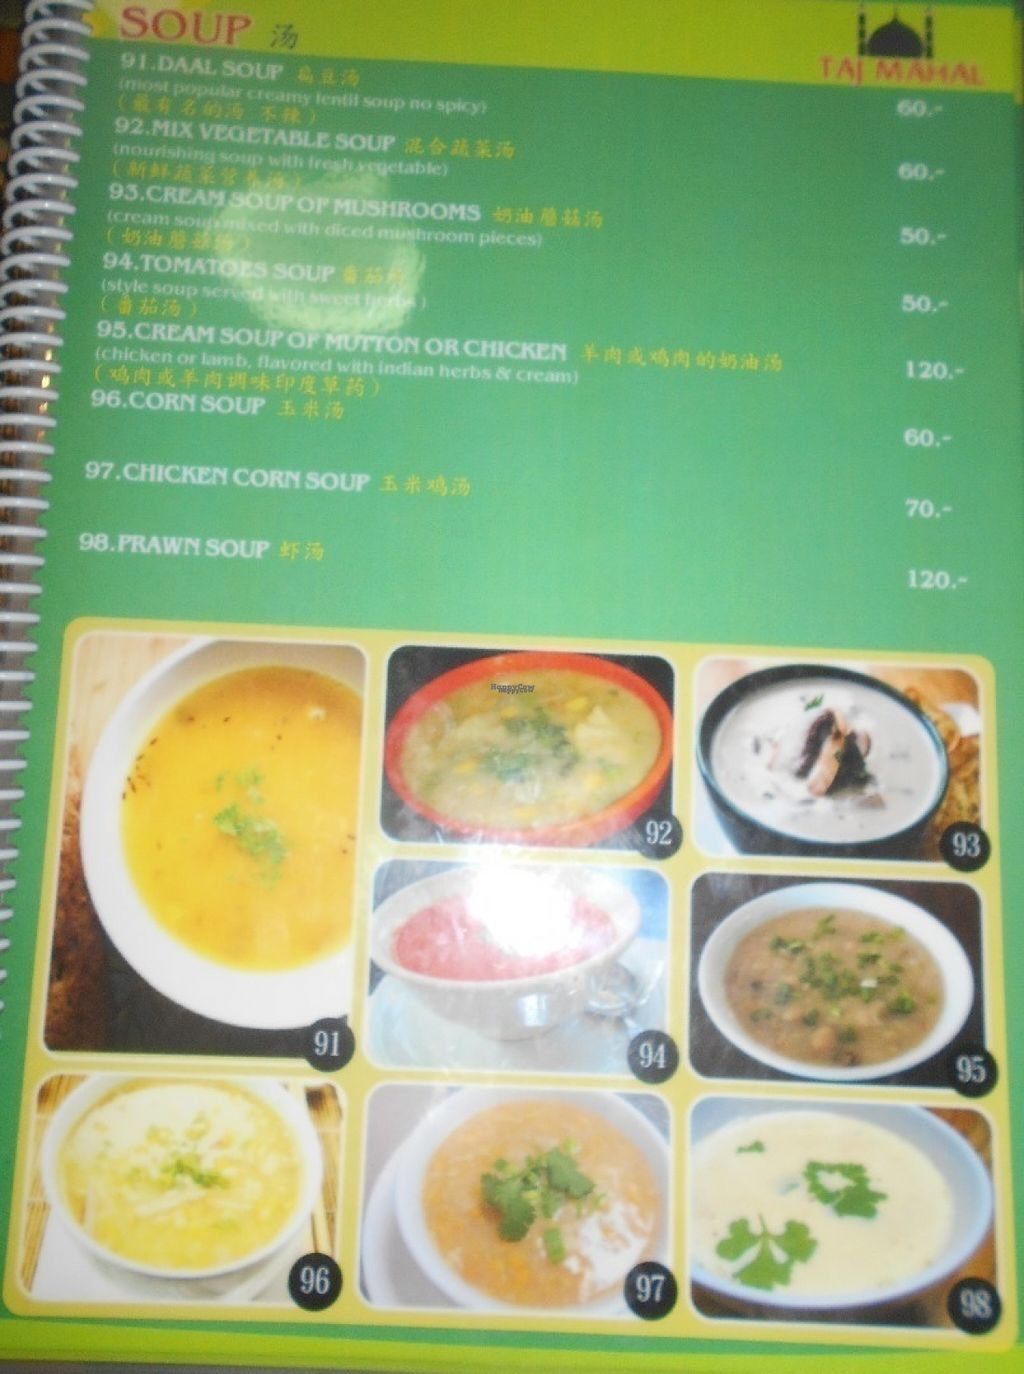 """Photo of Kashmir Indian Restaurant  by <a href=""""/members/profile/Kelly%20Kelly"""">Kelly Kelly</a> <br/>Kashmir Indian Restaurant <br/> August 5, 2016  - <a href='/contact/abuse/image/77951/165821'>Report</a>"""